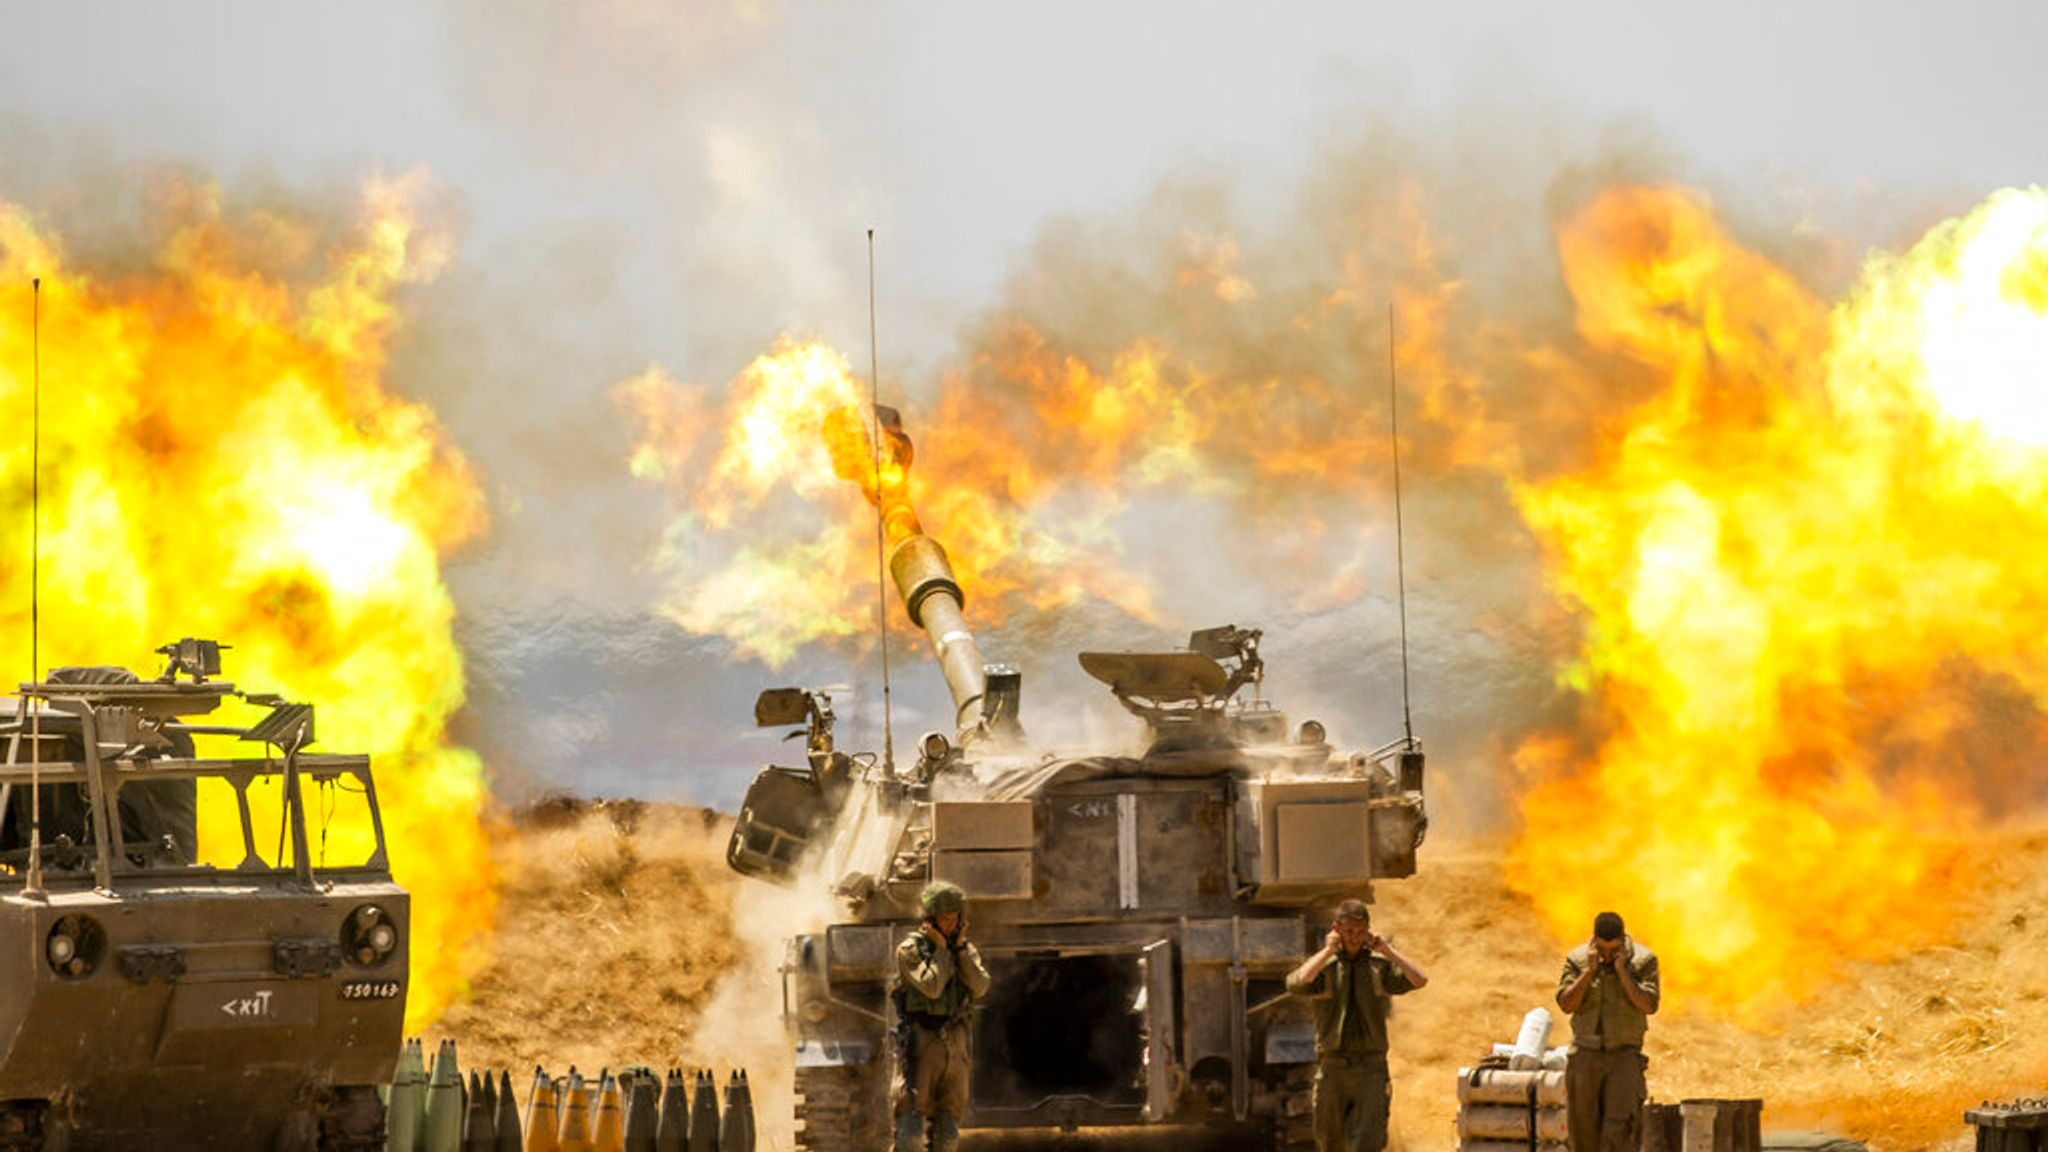 Israel-Gaza violence: Israel vows to continue airstrikes after fresh ...